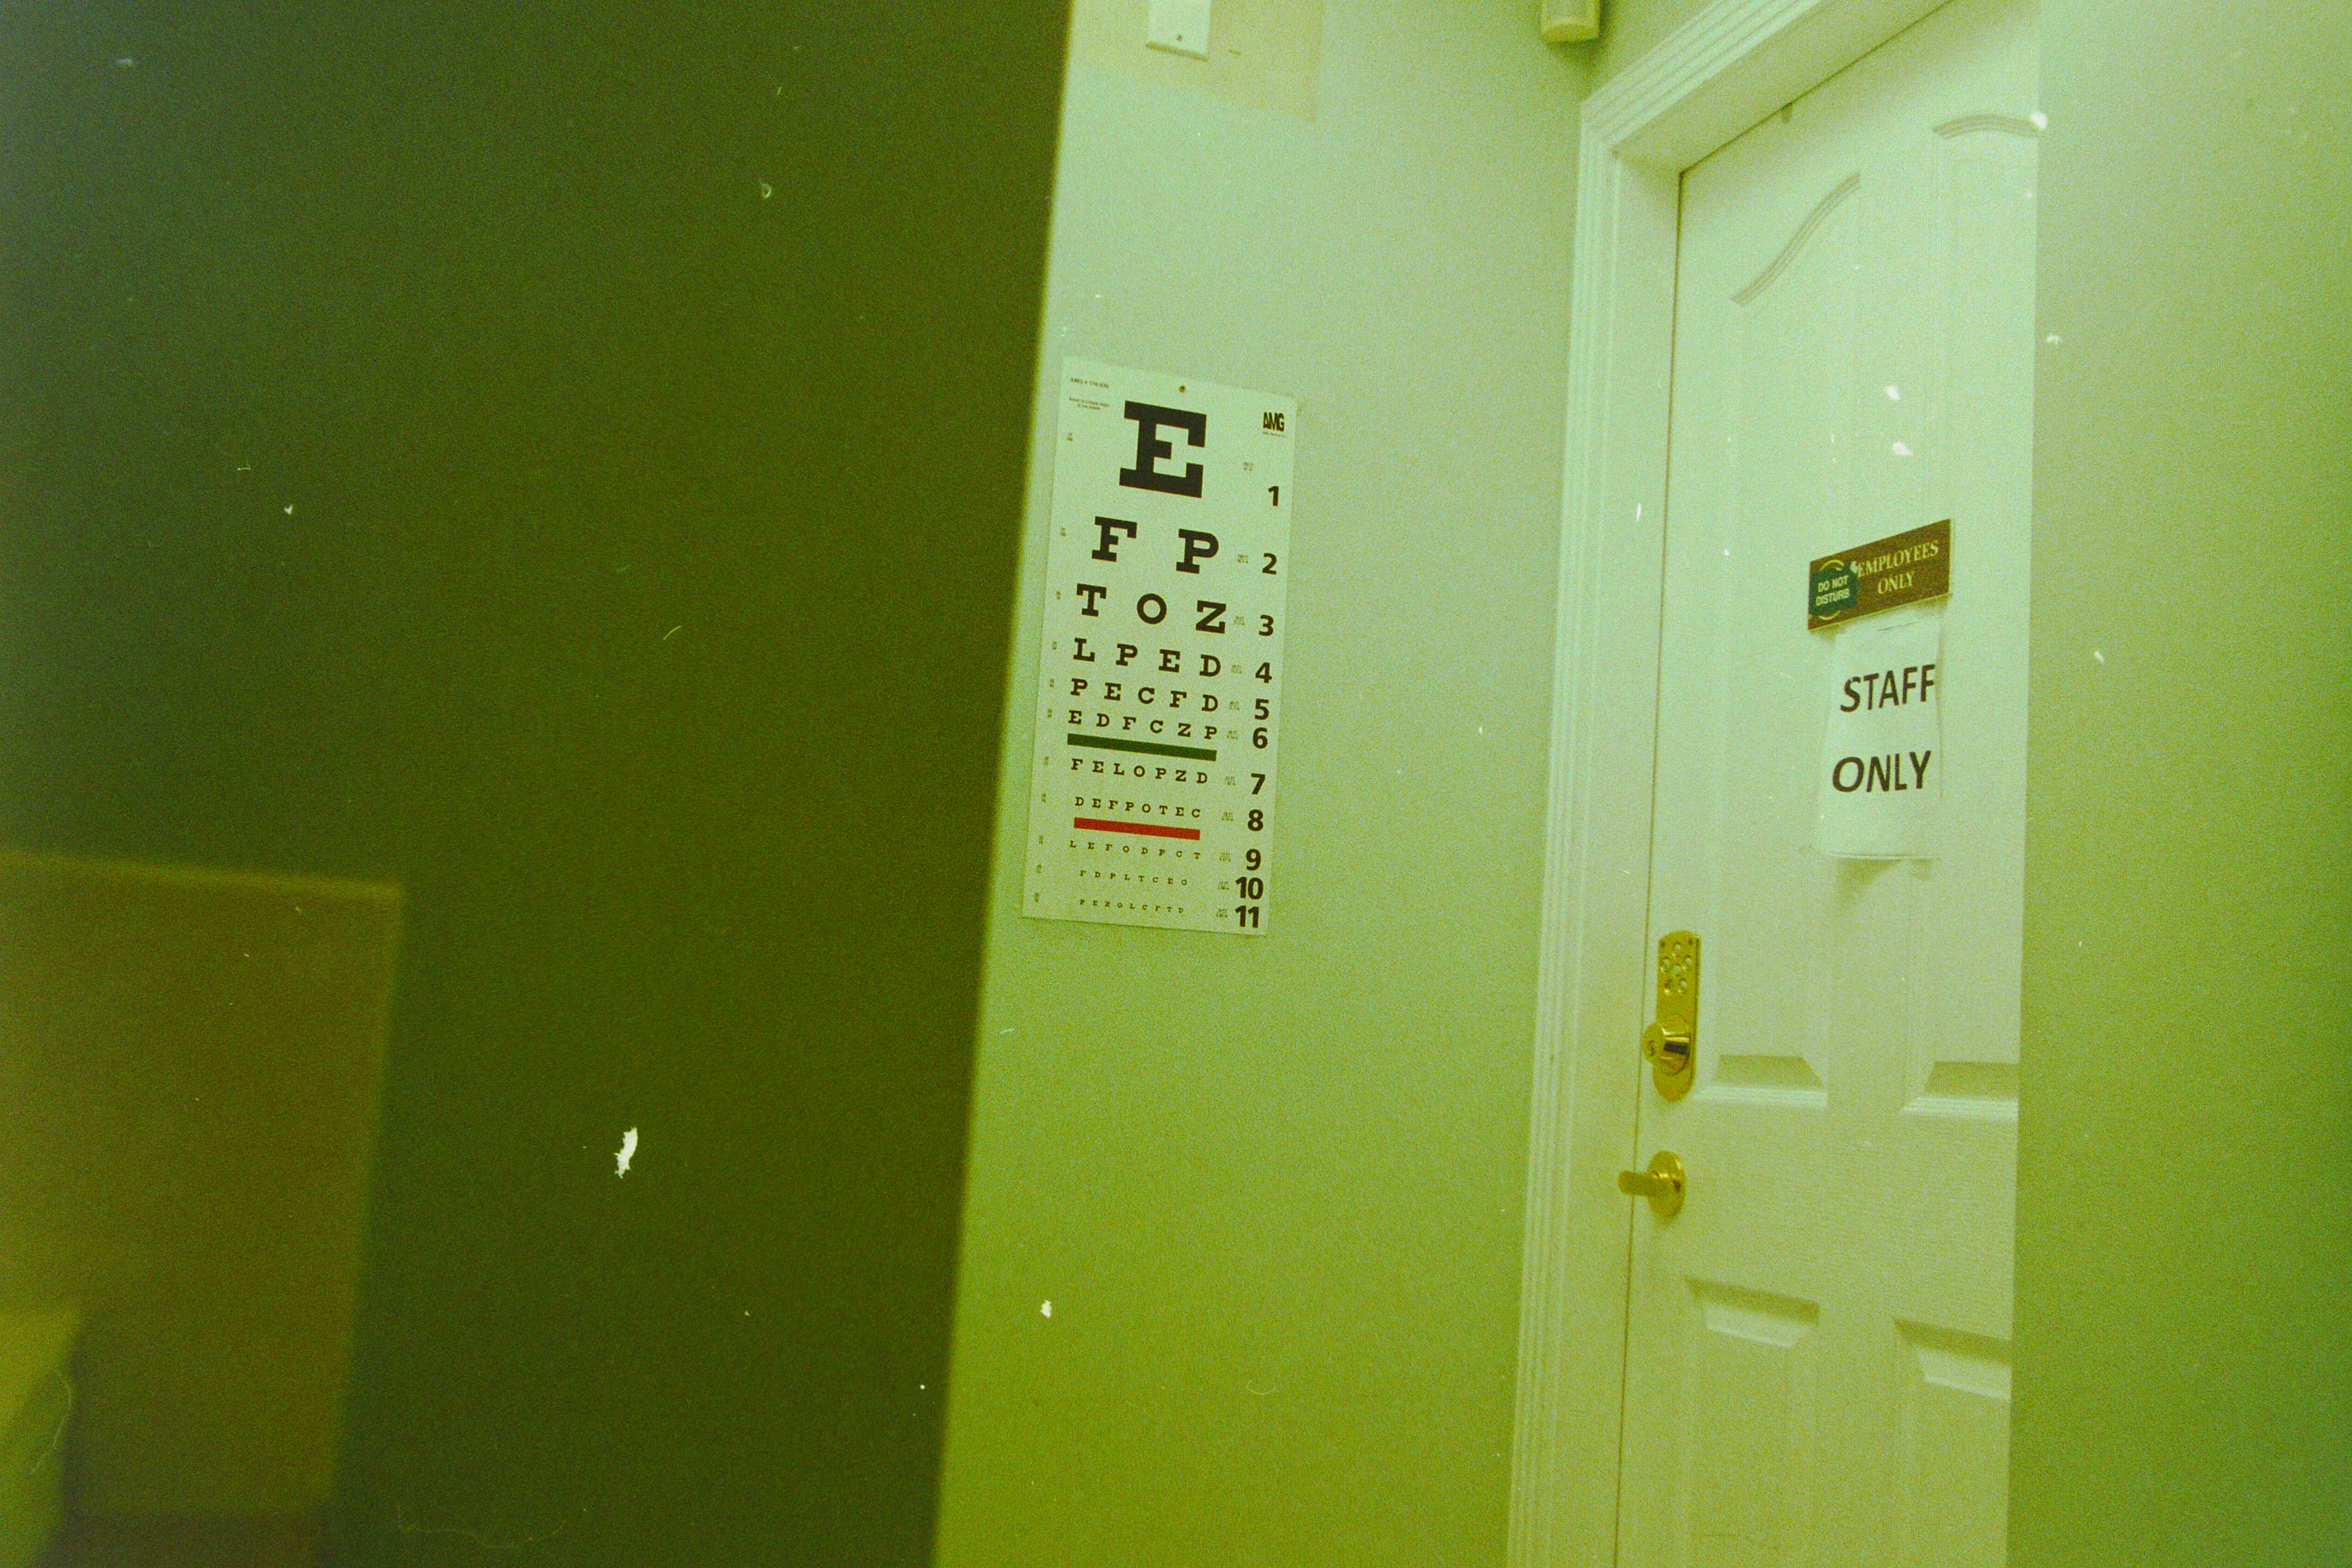 eye test chart on wall in room